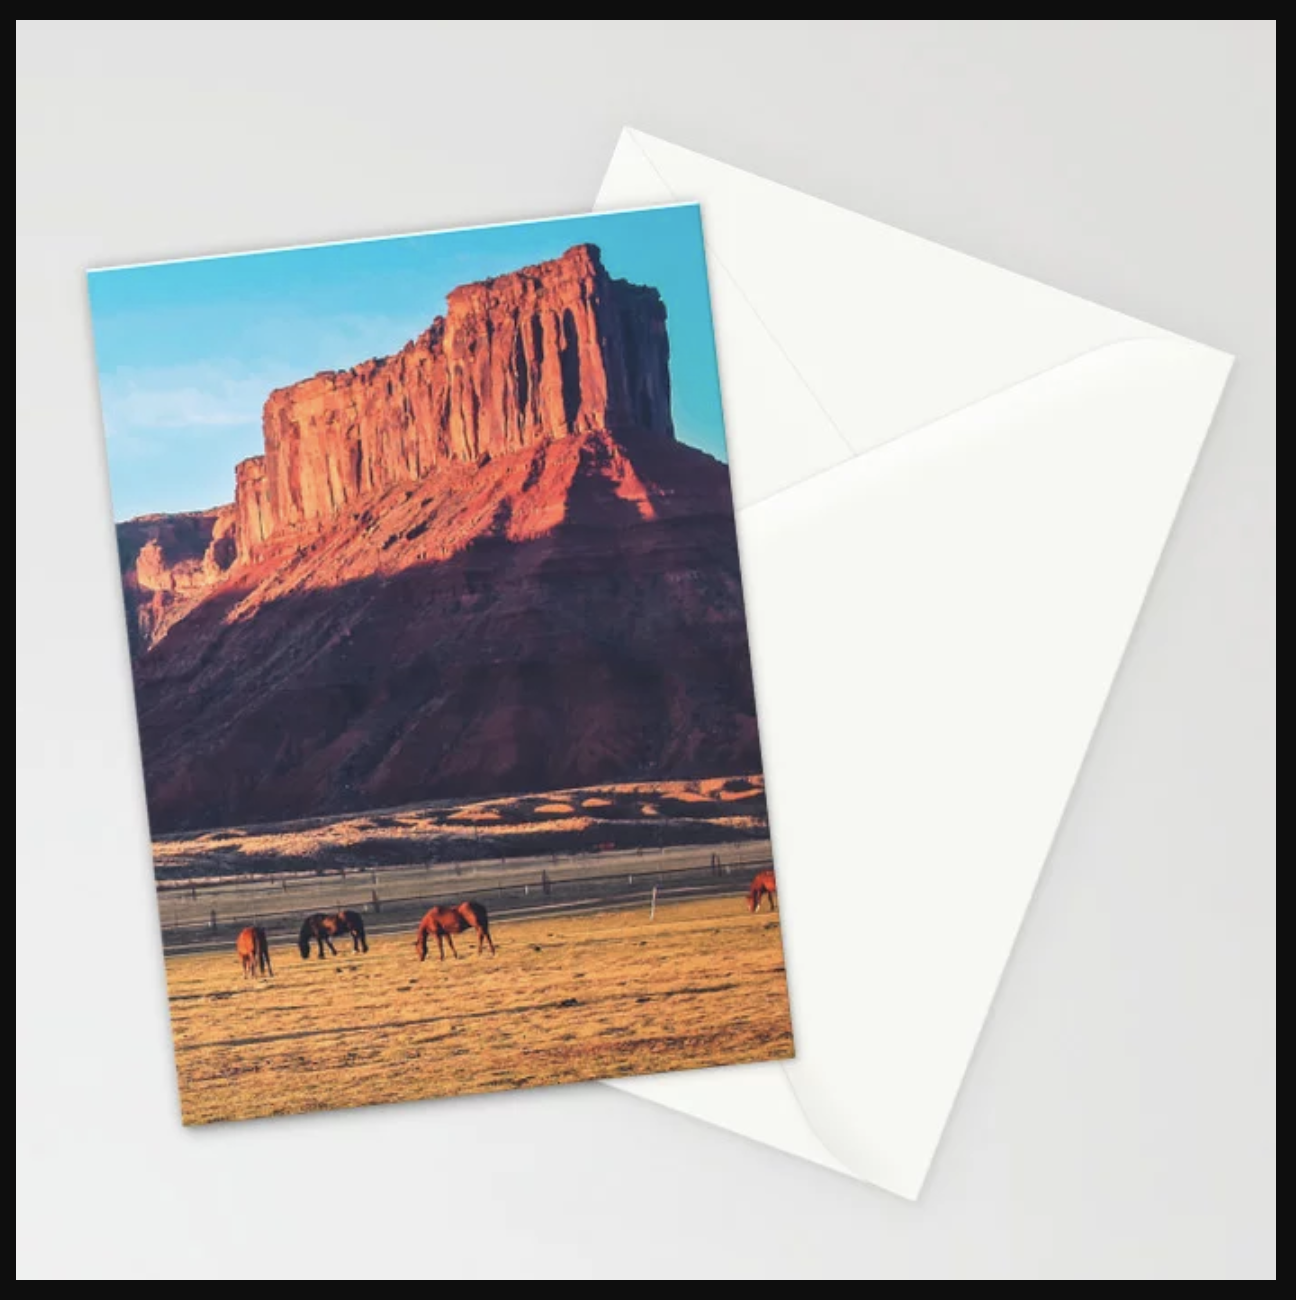 Horses with Desert Vista in Morning Light, Vintage Stationery Cards Available at Society6. #PhotosbyRyan